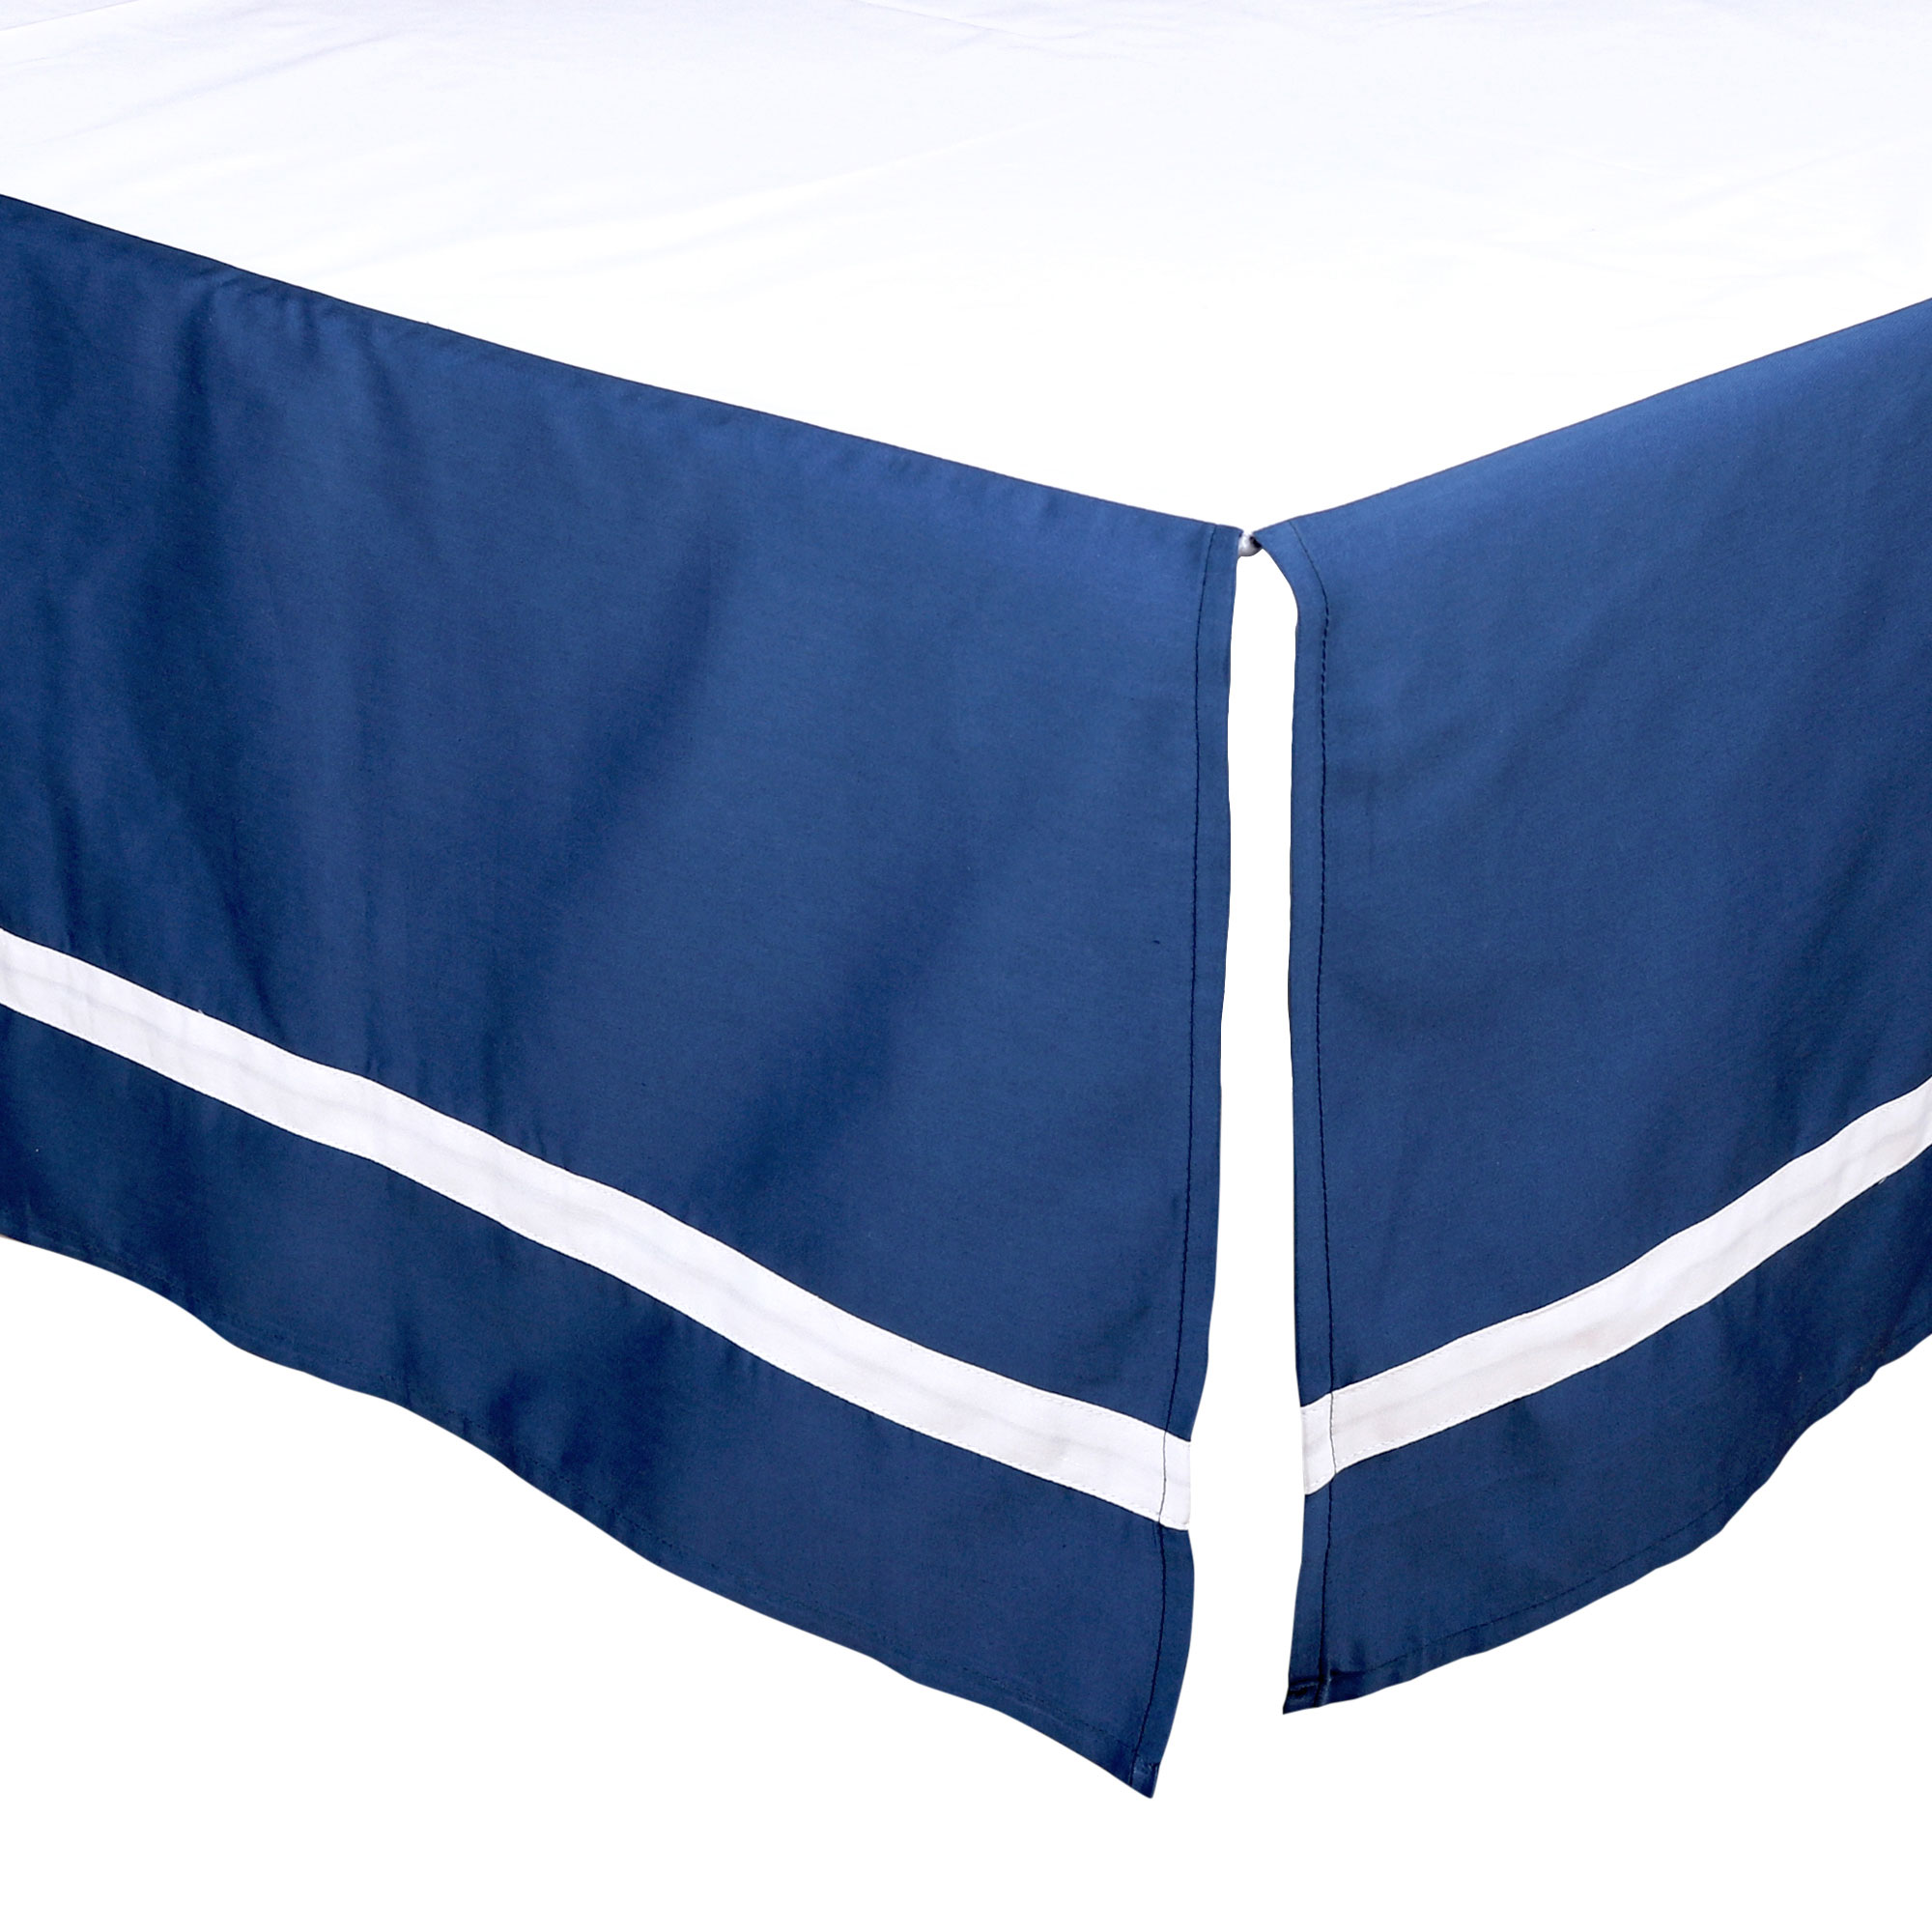 The Peanut Shell Tailored Crib Skirt - Solid Navy Blue with White Trim - 100% Cotton Sateen 14 Inch Drop, Standard Crib